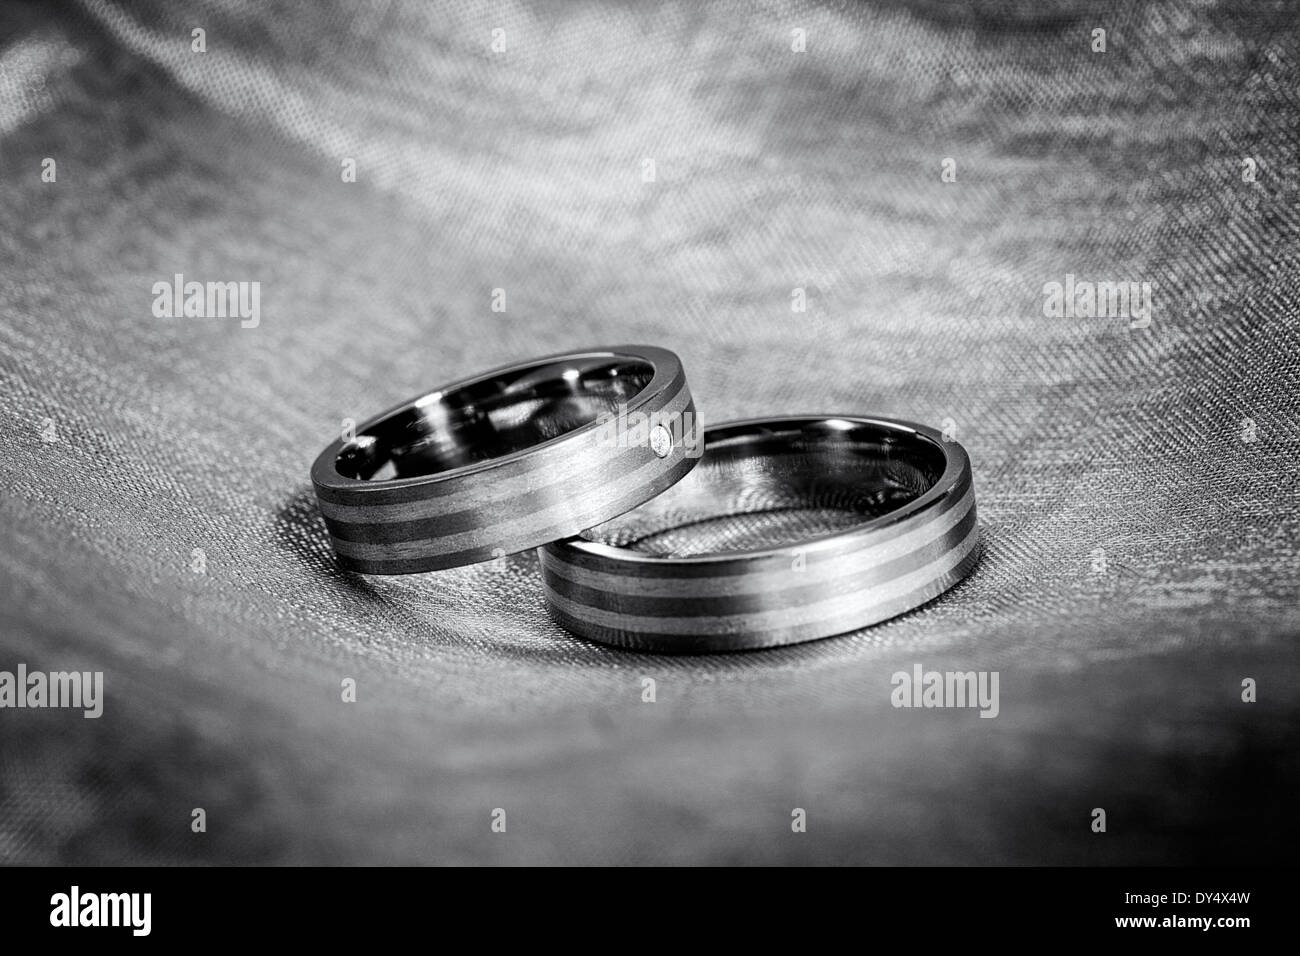 Black And White Image Of Wedding Rings On Cloth Stock Photo